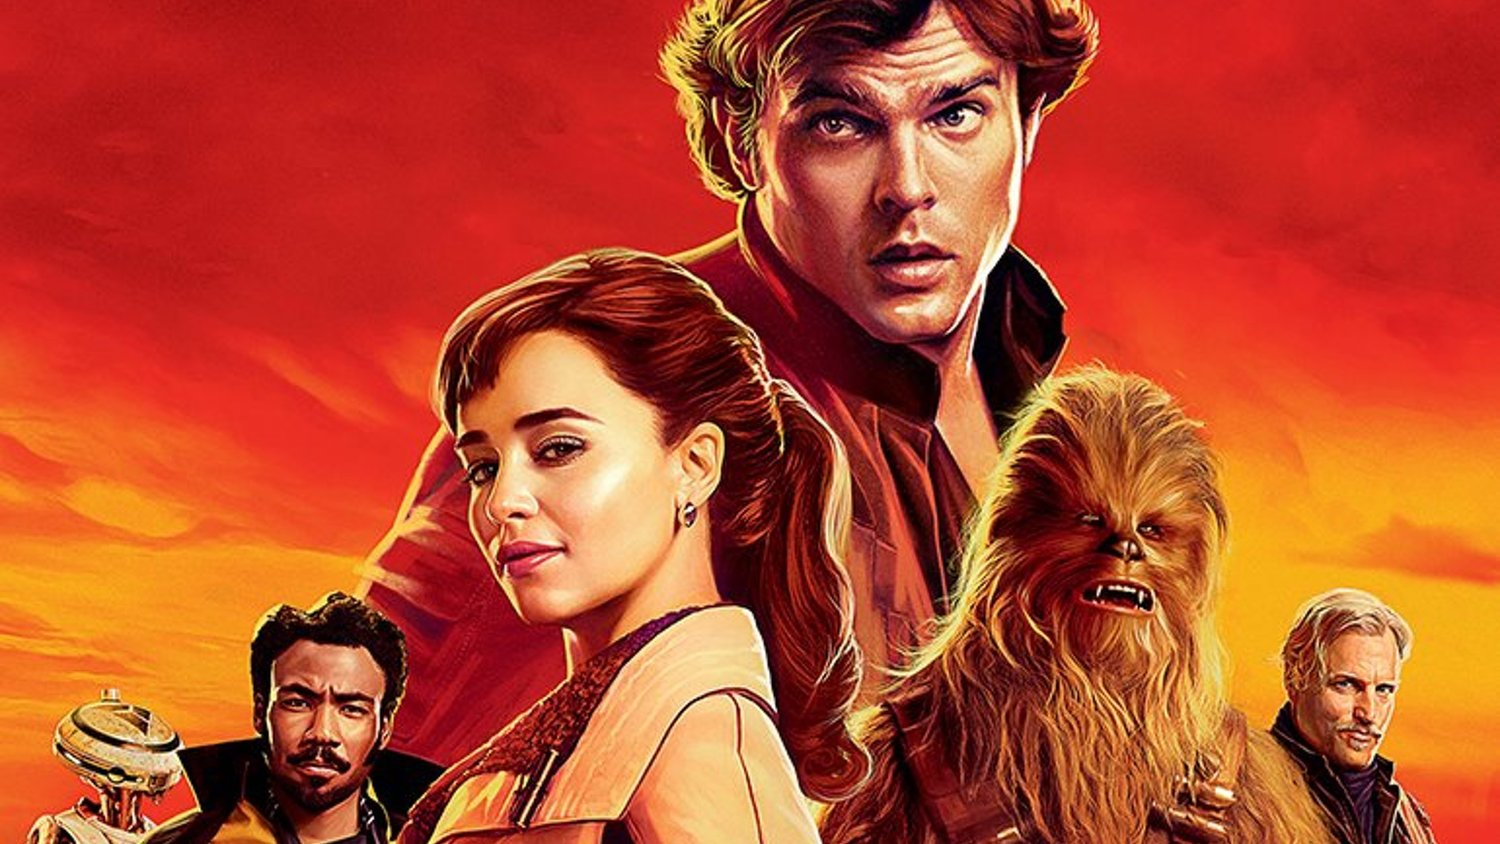 Looks Like The Posters For SOLO: A STAR WARS STORY Ripped